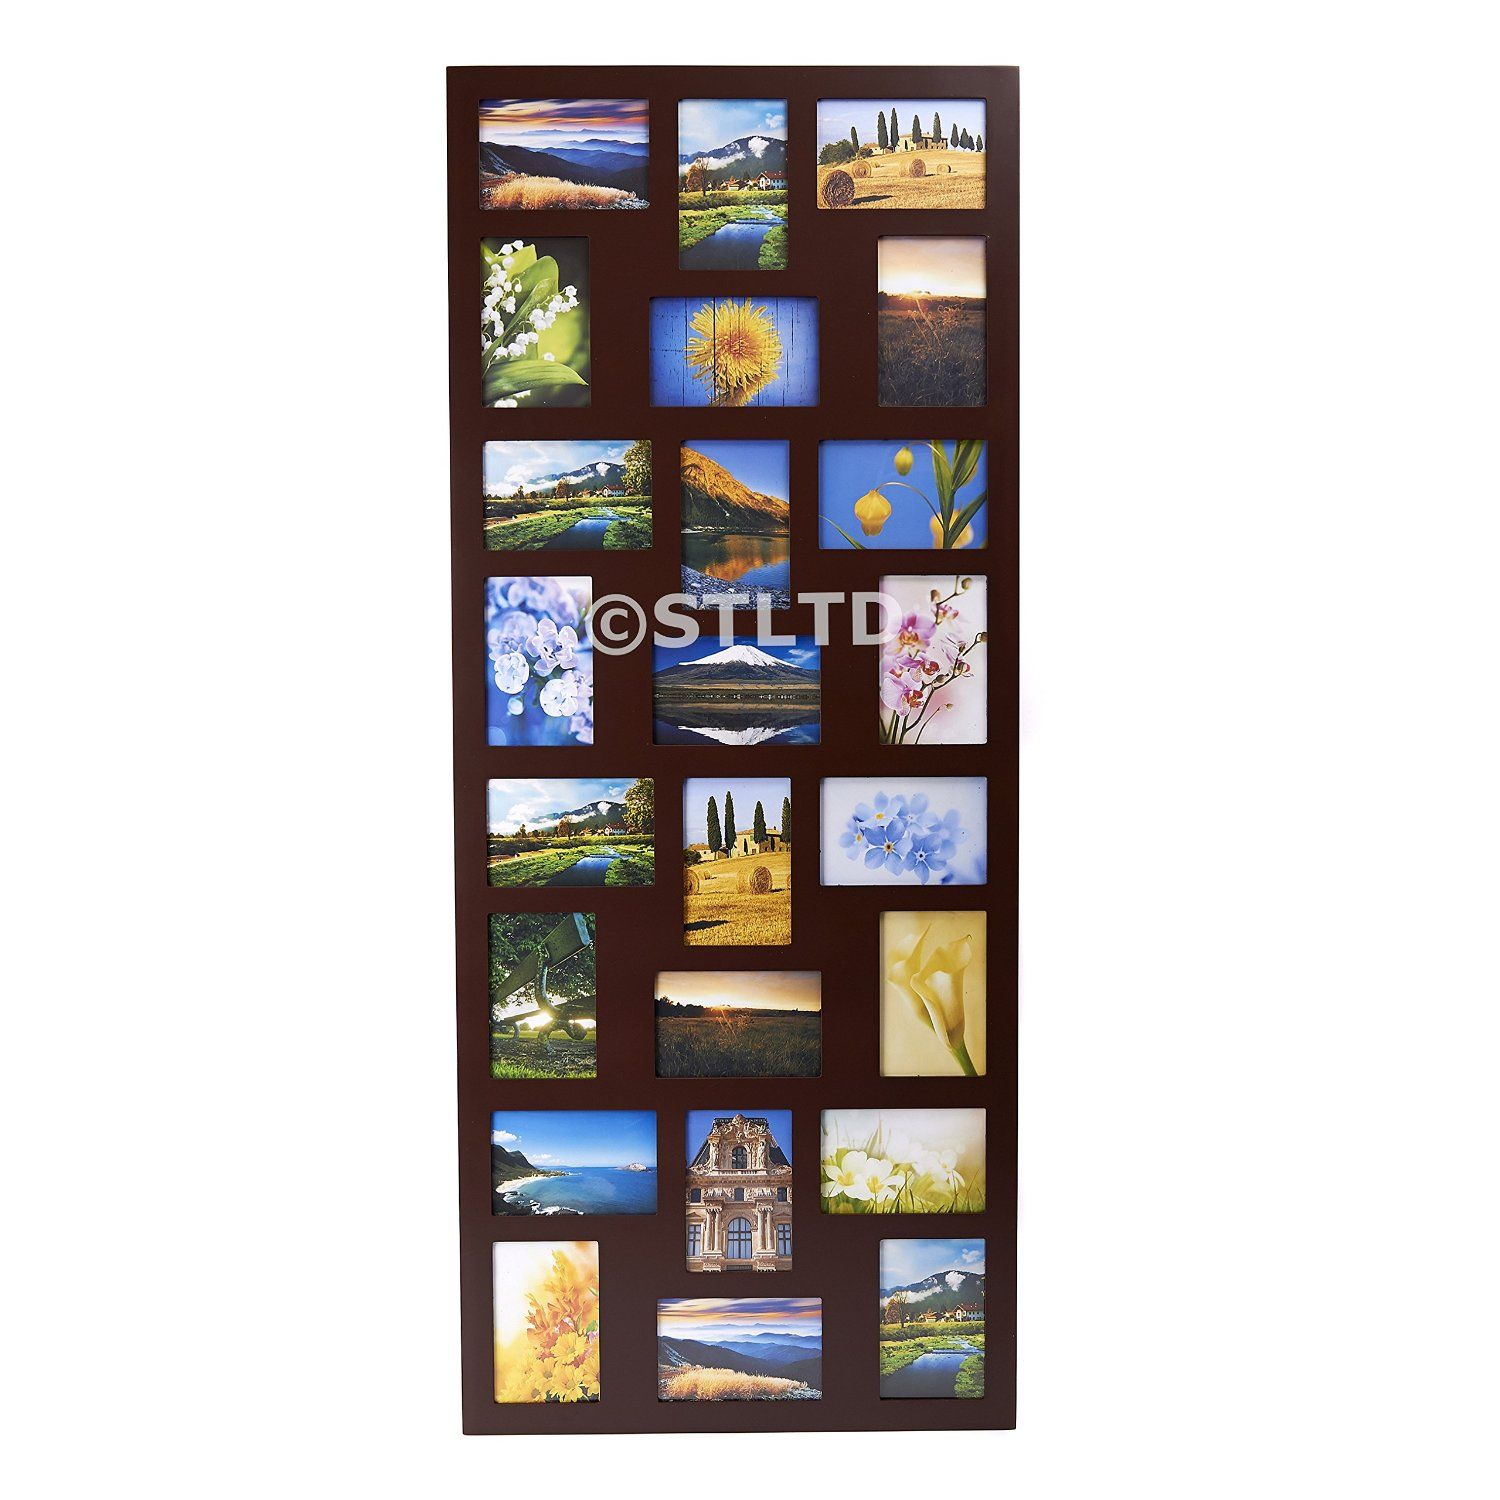 NEW PHOTO PICTURE FRAME HOLDS 24 PHOTOS APERTURE MULTI FRAME COLLAGE ...